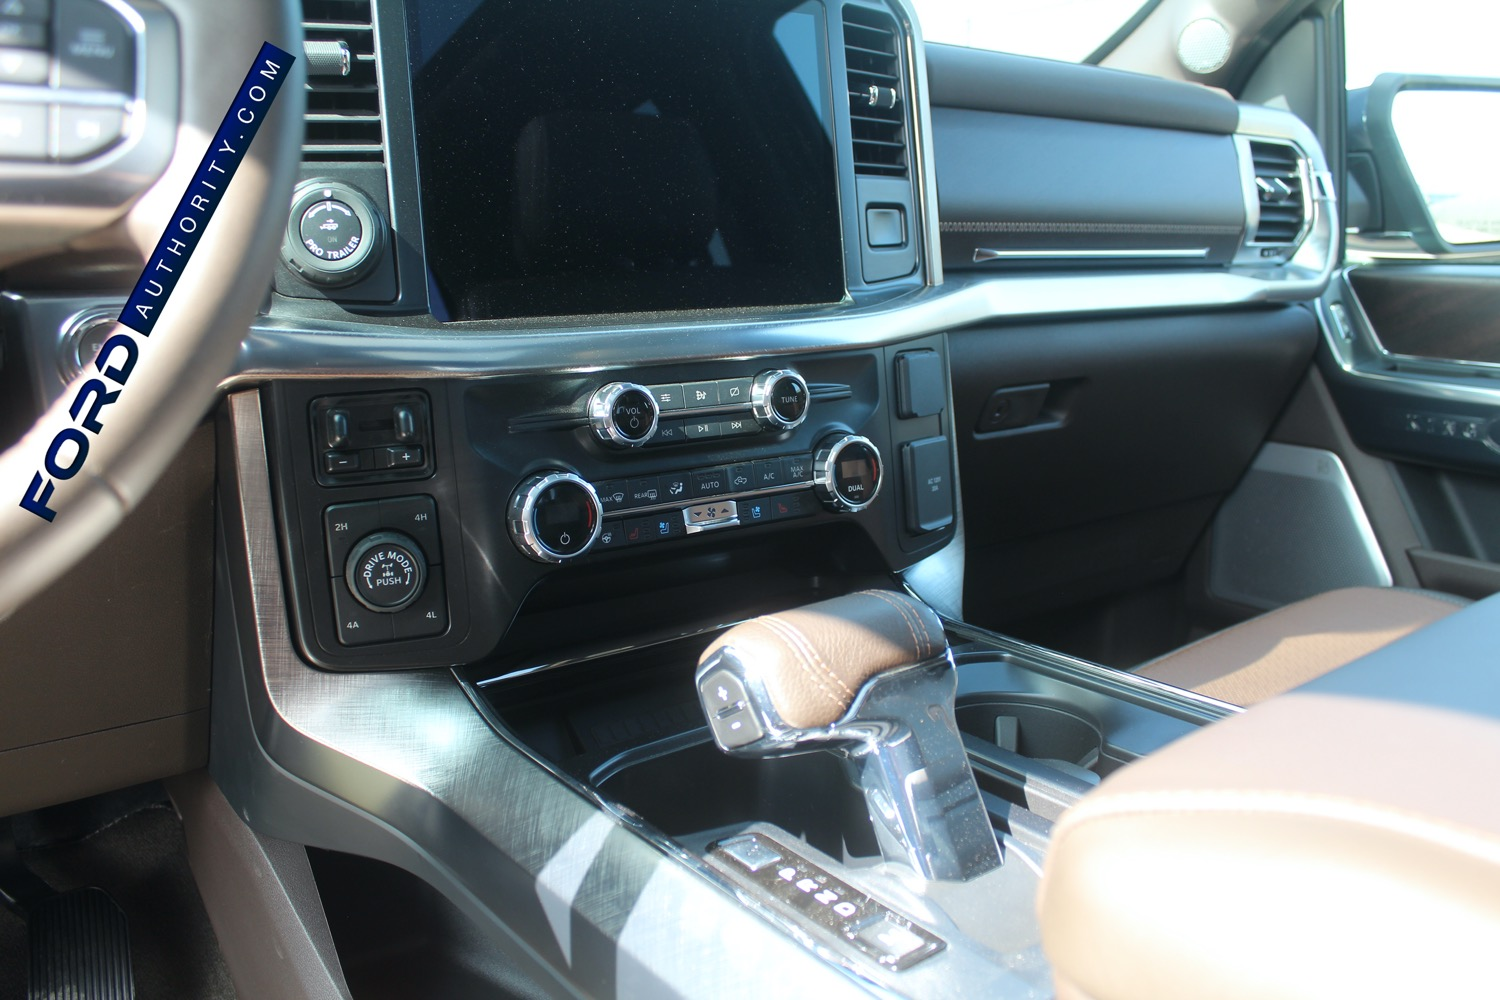 2021-Ford-F-150-King-Ranch-Interior-Front-Row-006-center-stack-infotainment-HVAC-controls.jpg